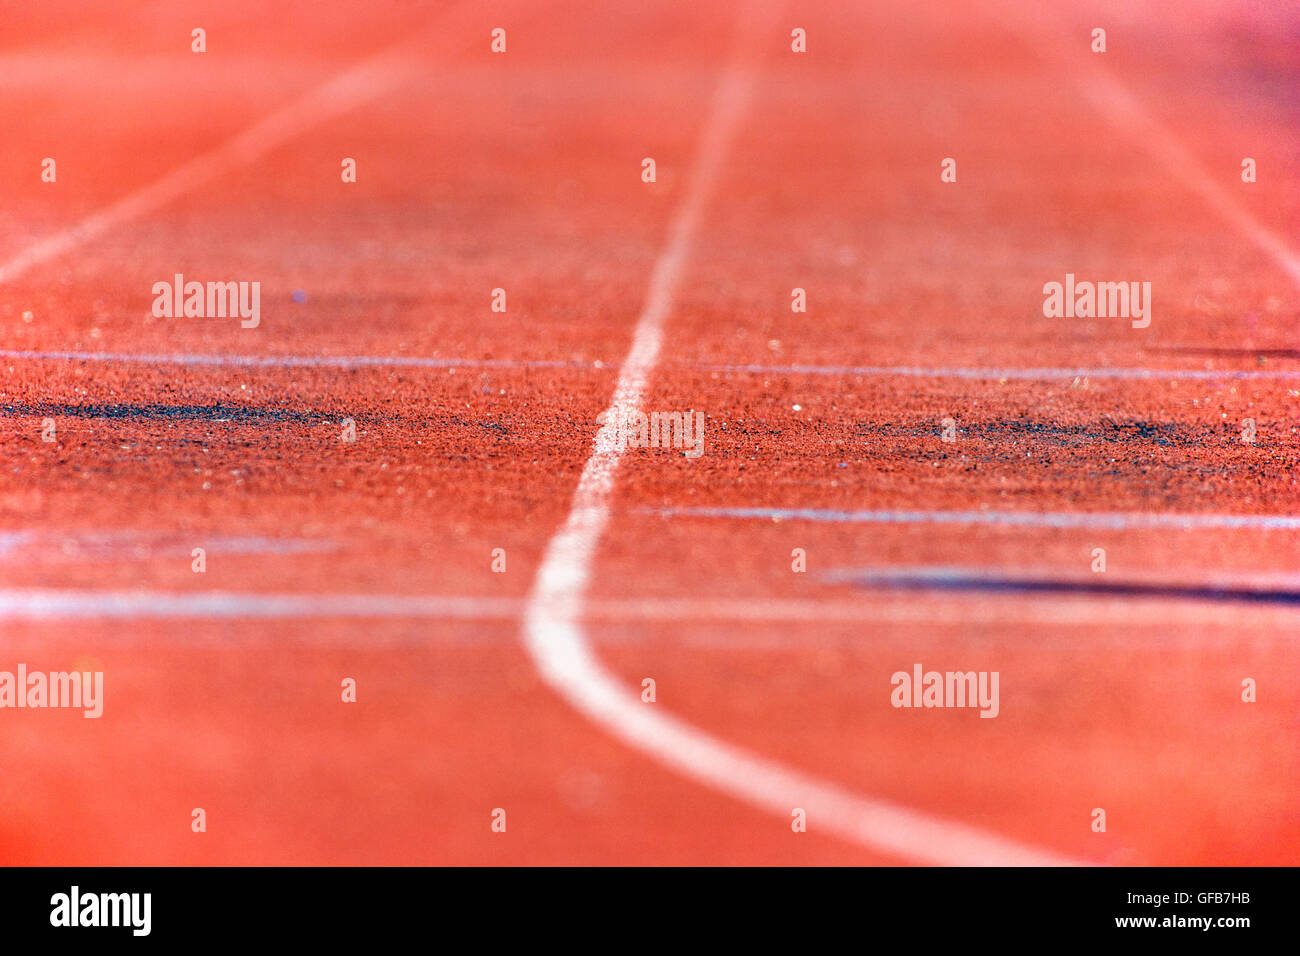 Close up of the synthetic track surface at a high school track & field meet - Stock Image